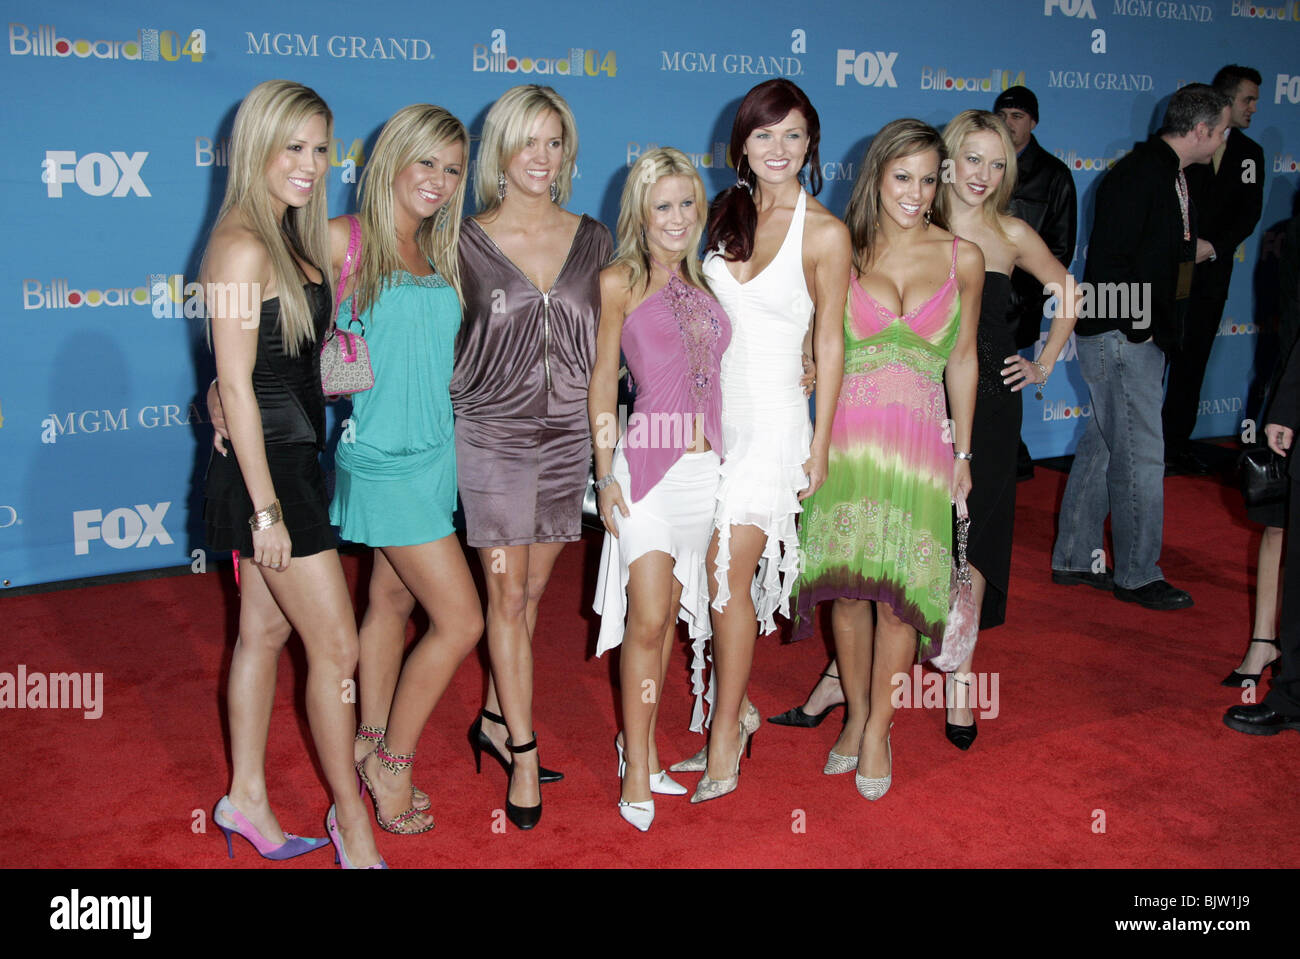 AUSSIE ANGELS 2004 BILLBOARD MUSIC AWARDS MGM GRAND GARDEN ARENA MGM GRAND HOTEL LAS VEGAS US 08 December 2004 - Stock Image